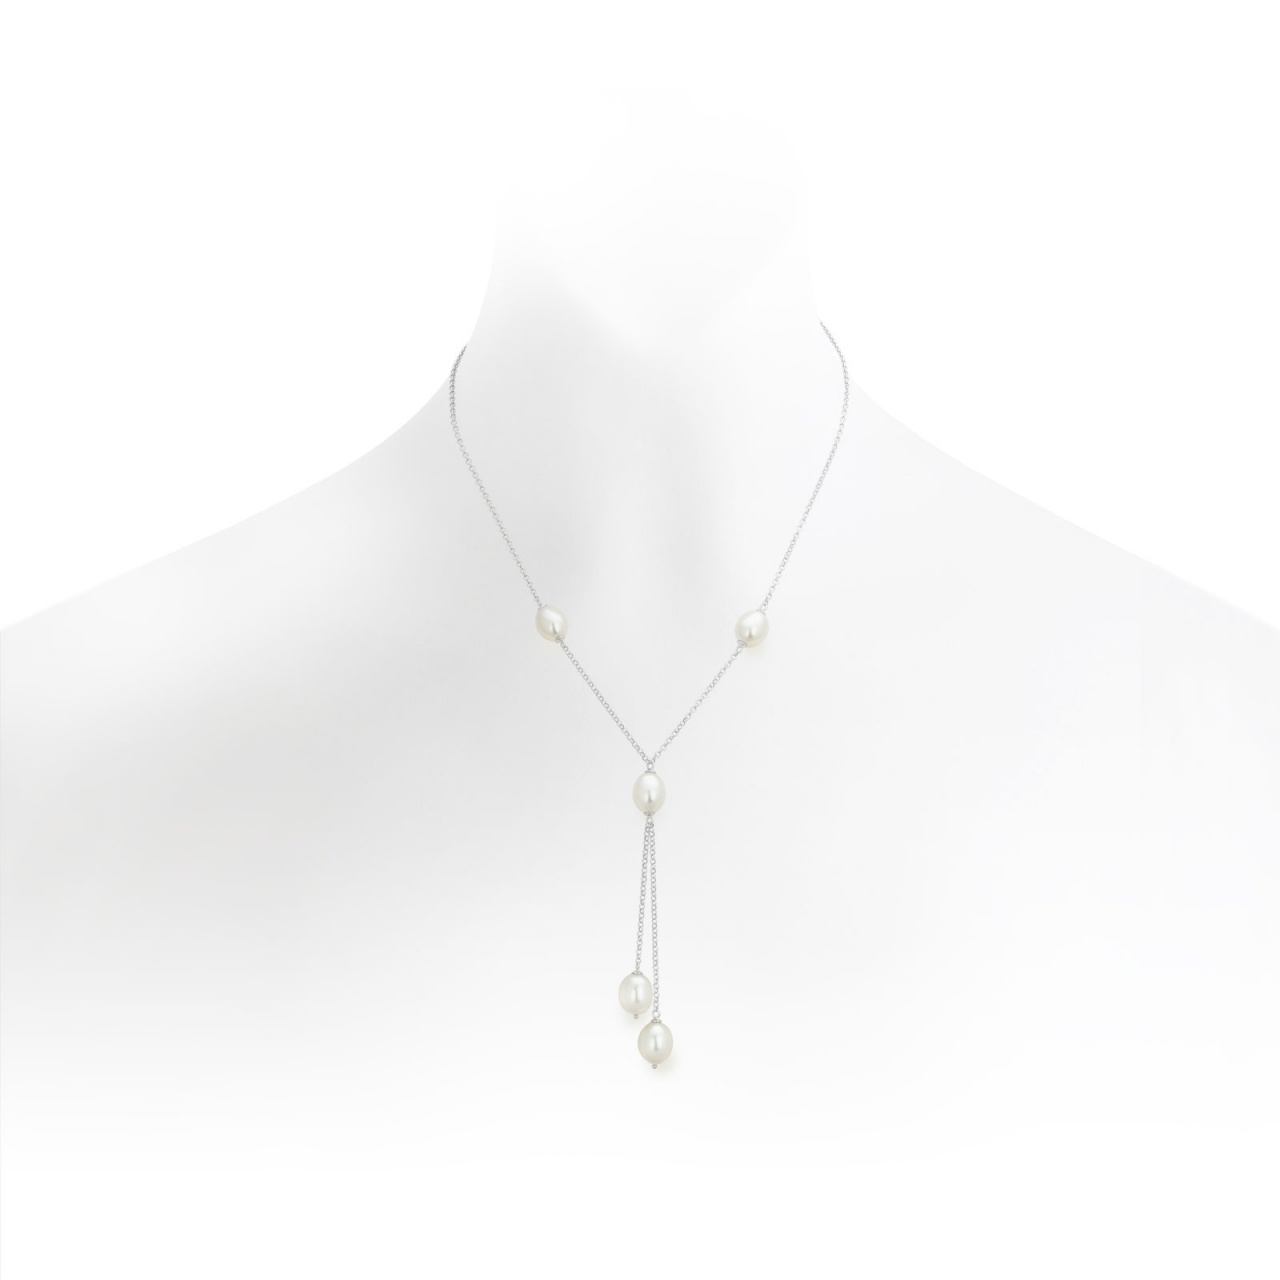 White Drop Pearl Lariat Necklace with Silver Chain-FNWOSS0296-1